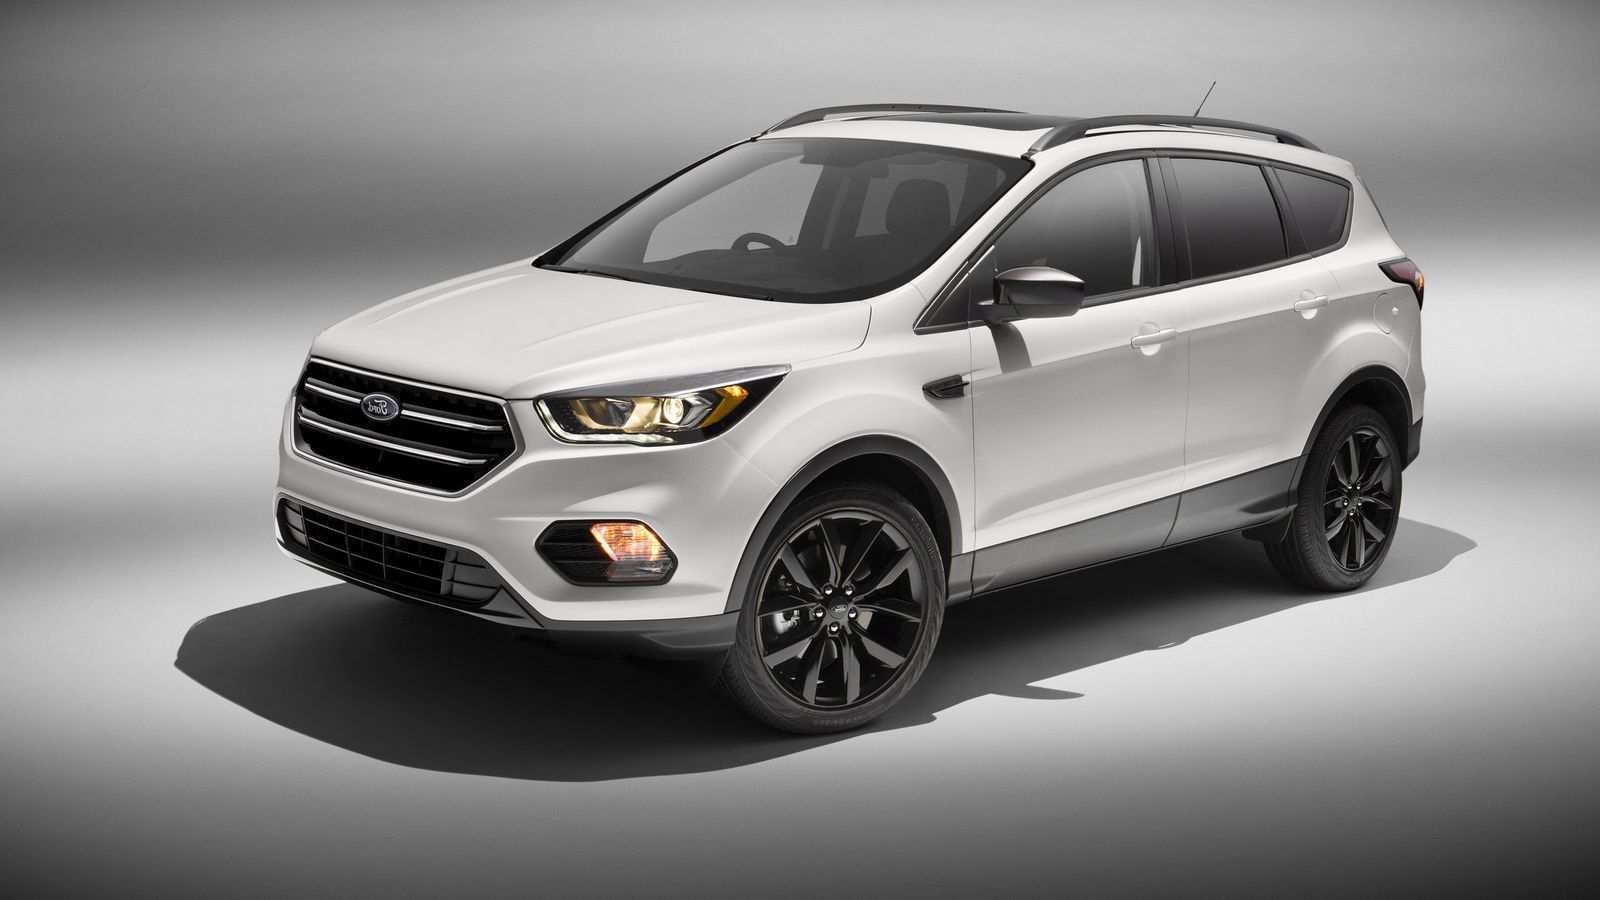 57 Gallery of 2019 Ford Escape Hybrid Specs for 2019 Ford Escape Hybrid